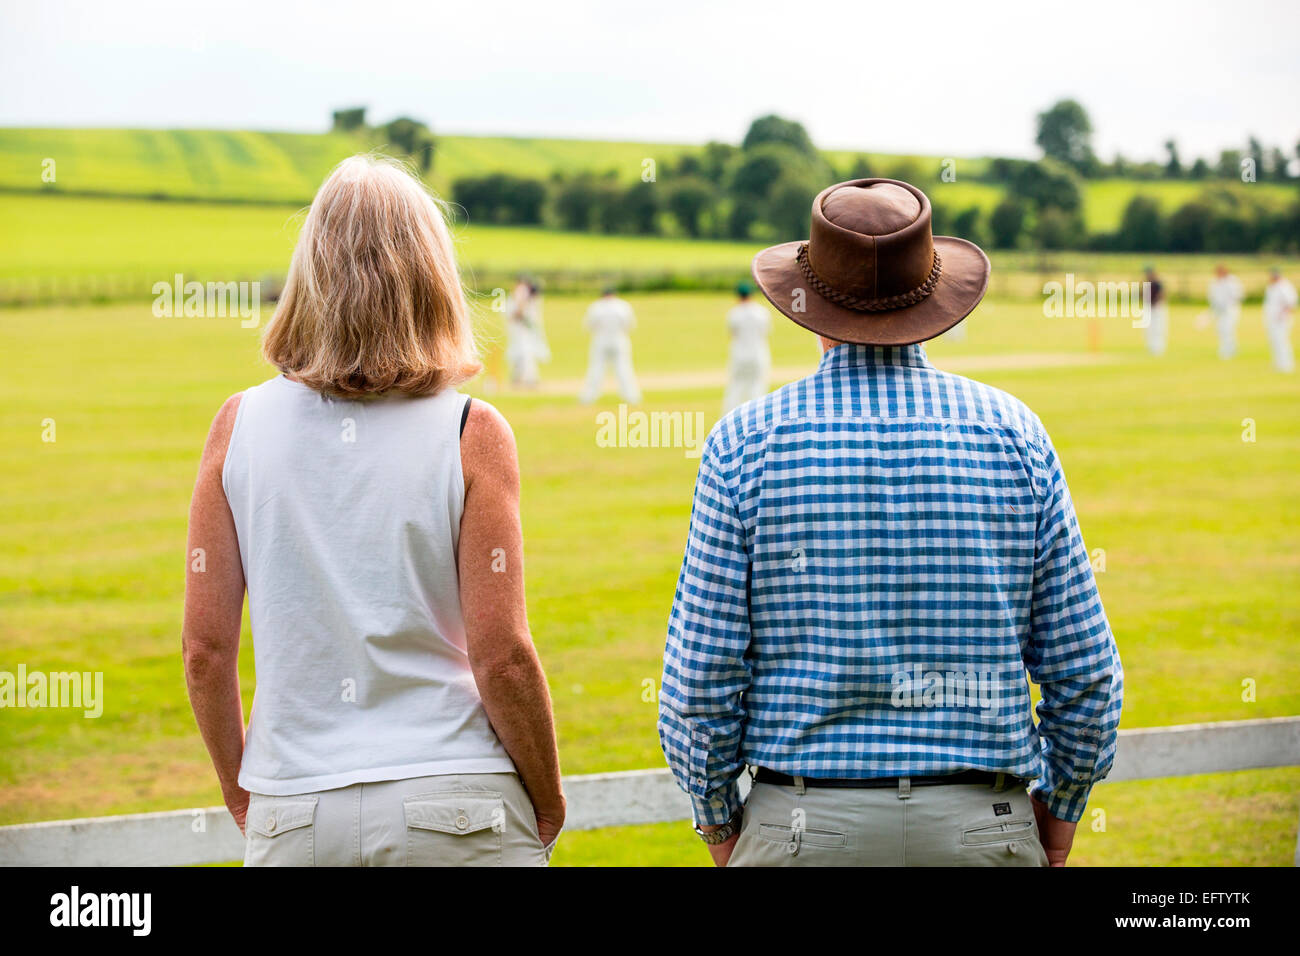 Rear view of couple watching cricket match on cricket field Stock Photo